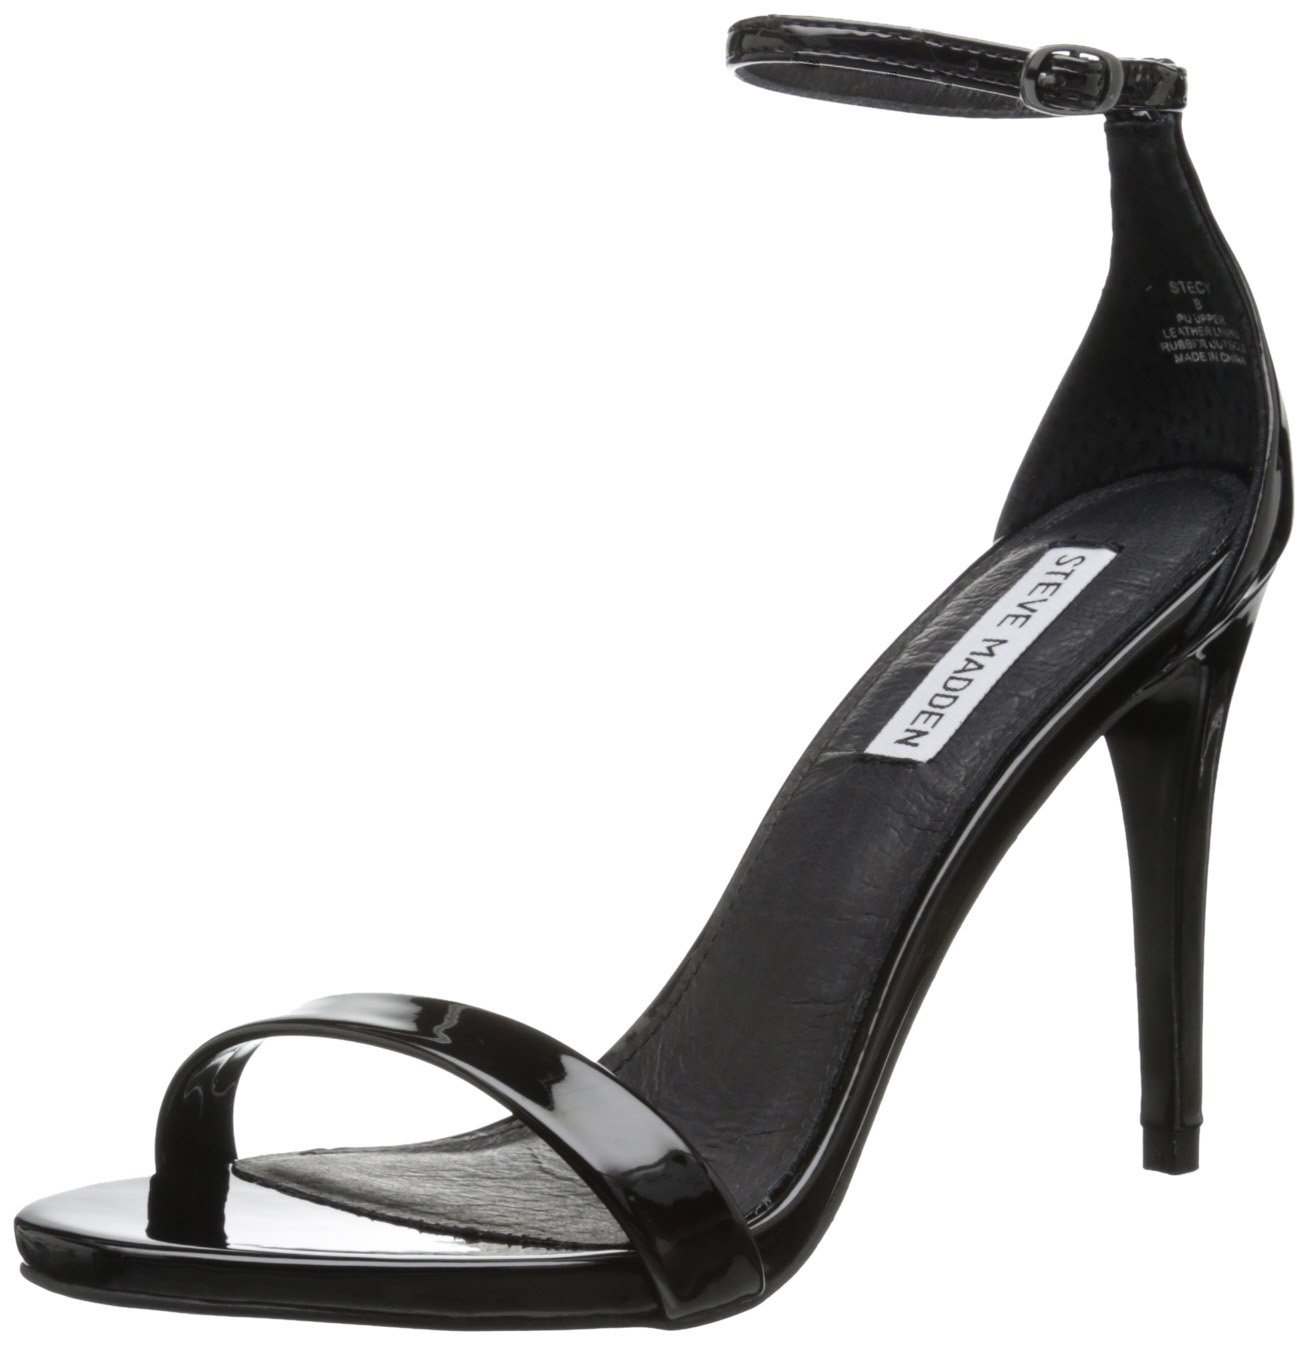 dbcb8aefd496 Steve Madden Stecy Dress Sandal in Black Patent Color